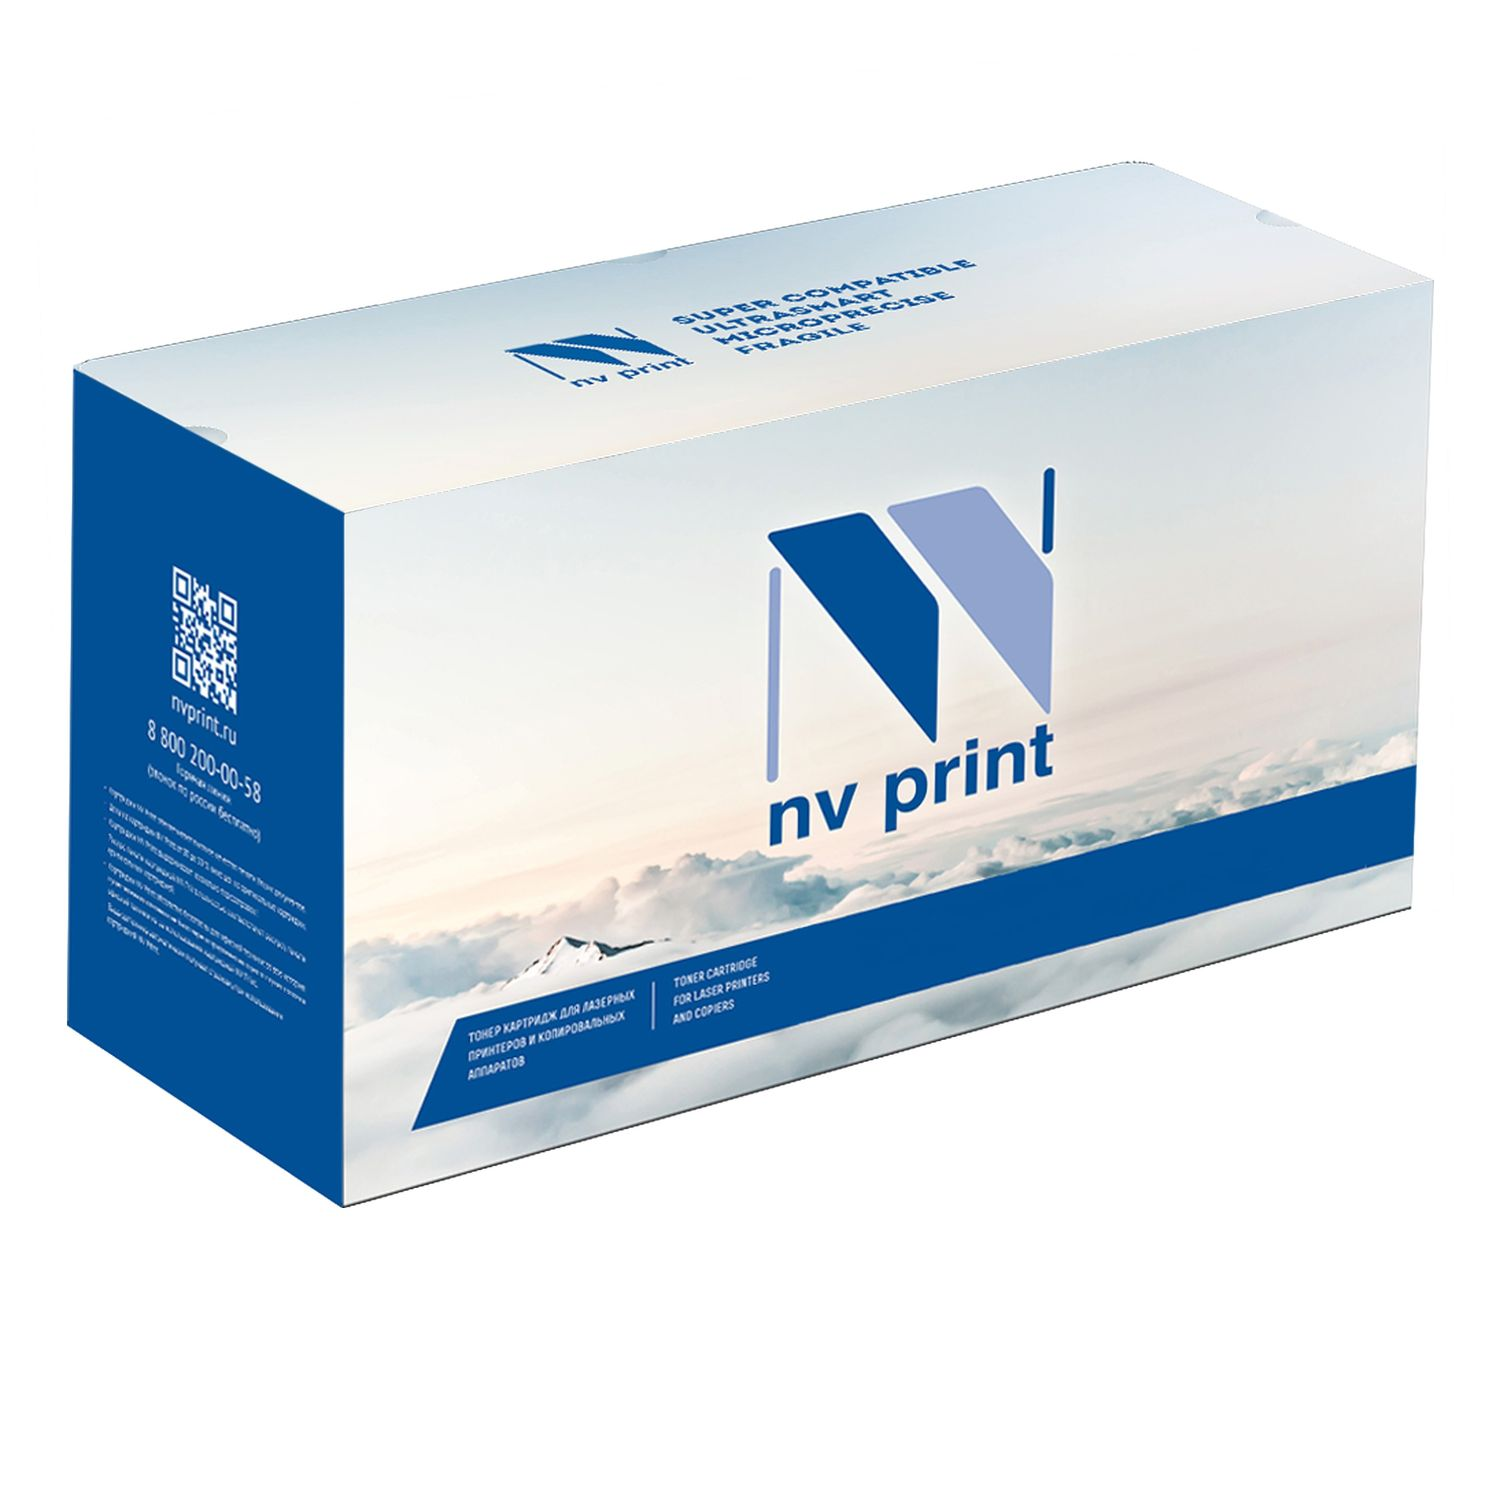 Картридж NV Print совместимый NV-T106R02778 для Xerox Phaser 3052/3260/WorkCentre 3215/3225 (3000k) nv print xerox 106r01604